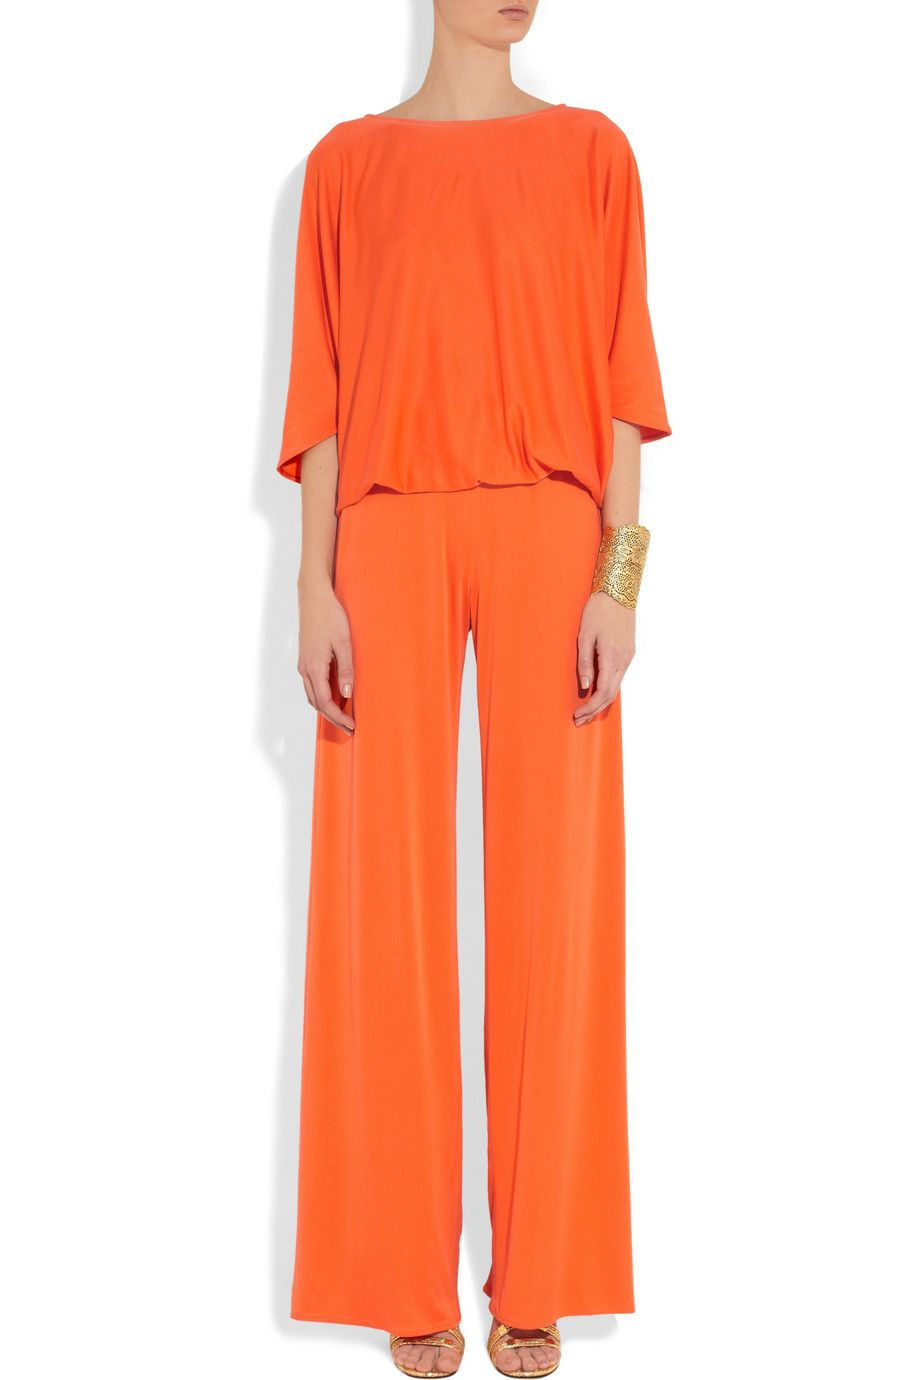 Issa jumpsuit, Herv Van der Straeten earrings, Aurlie